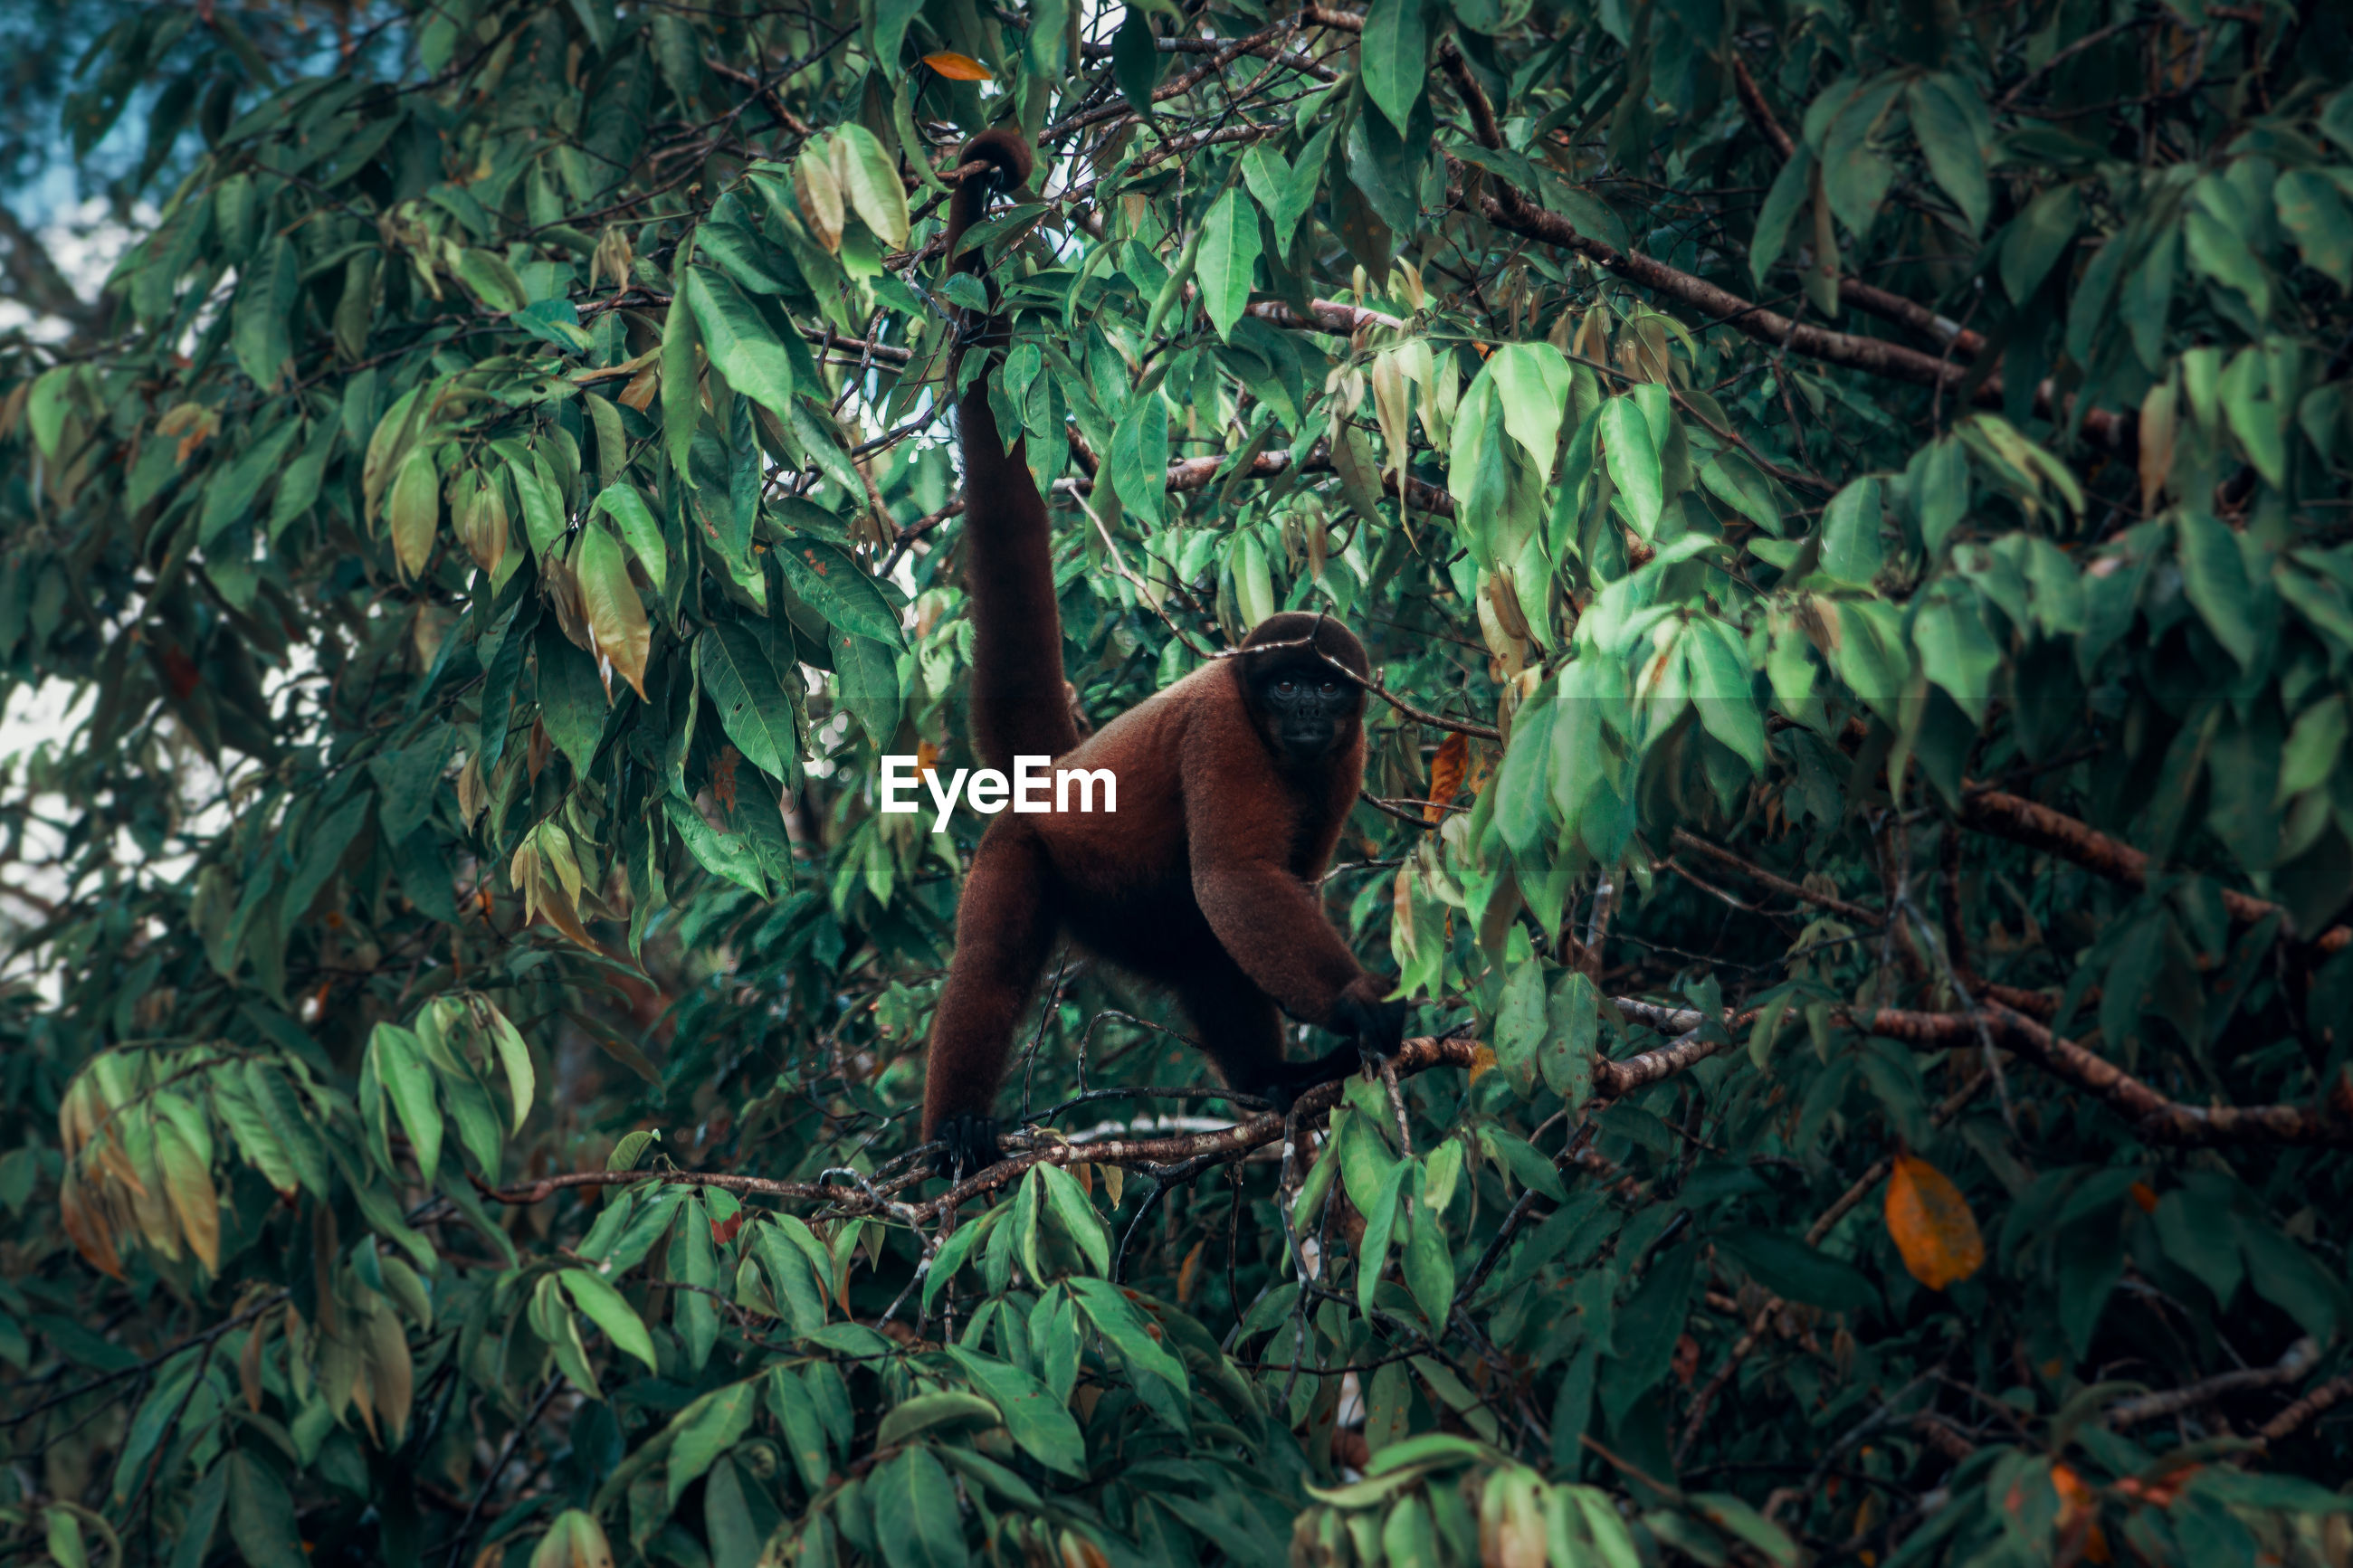 Monkey in a forest